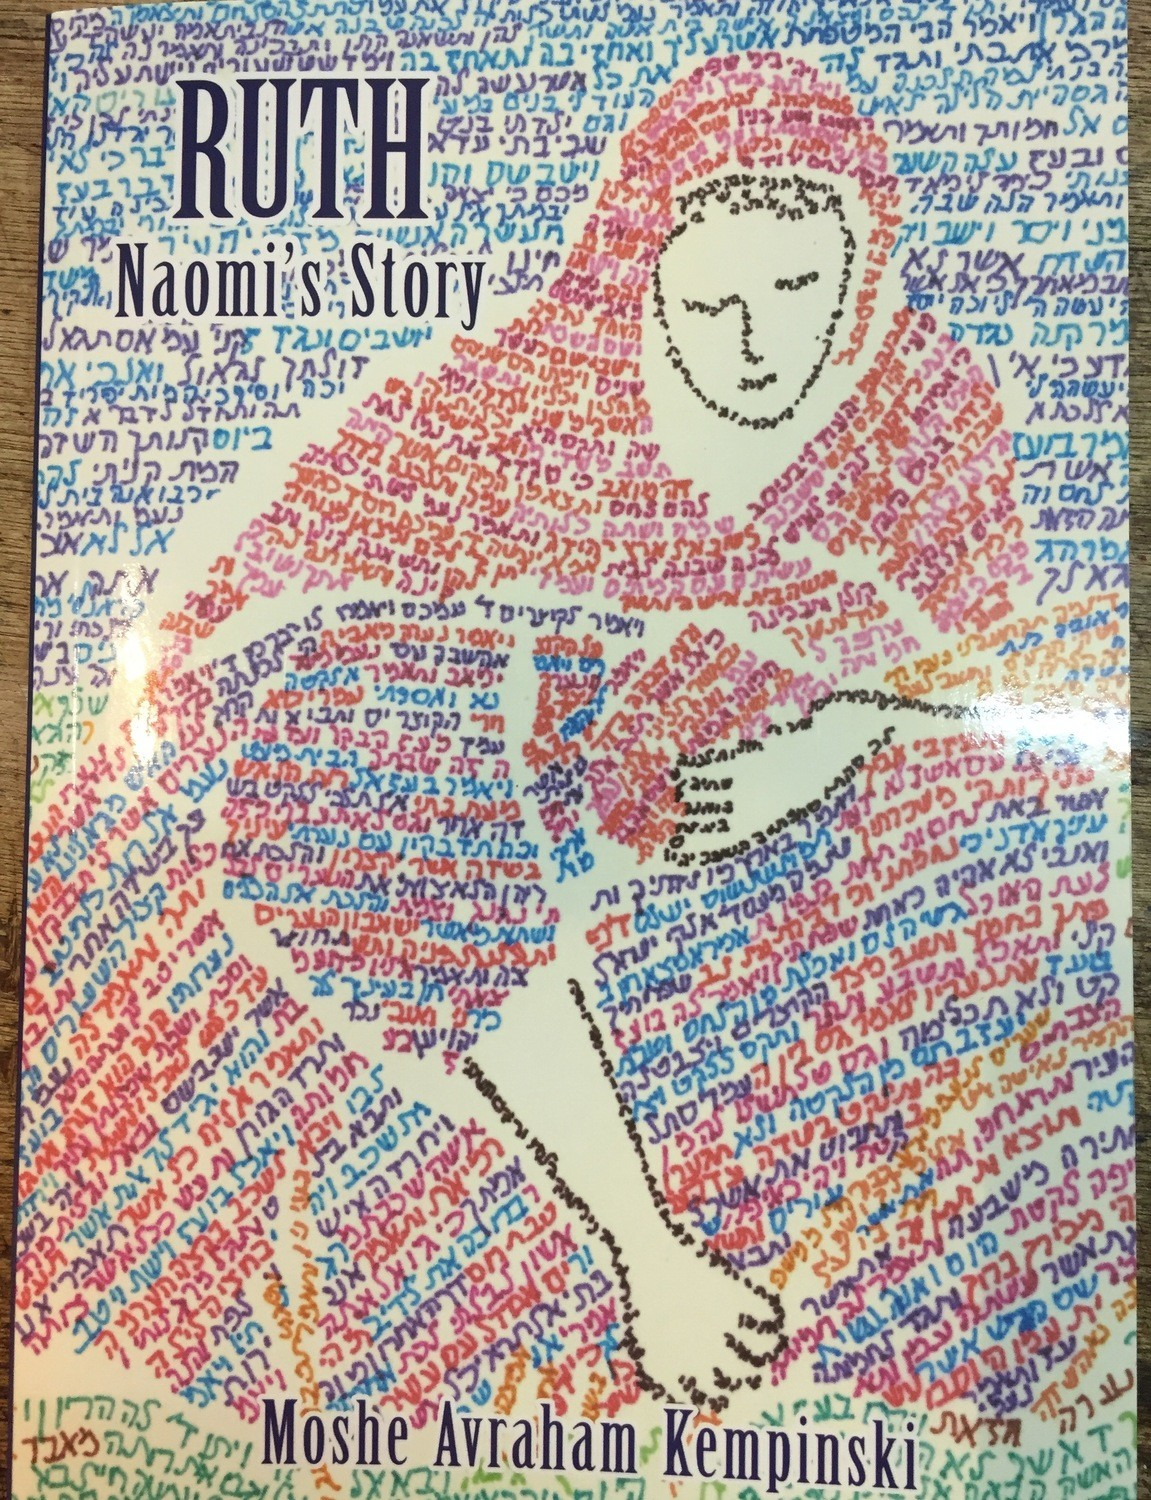 The Book of Ruth: Naomi's story